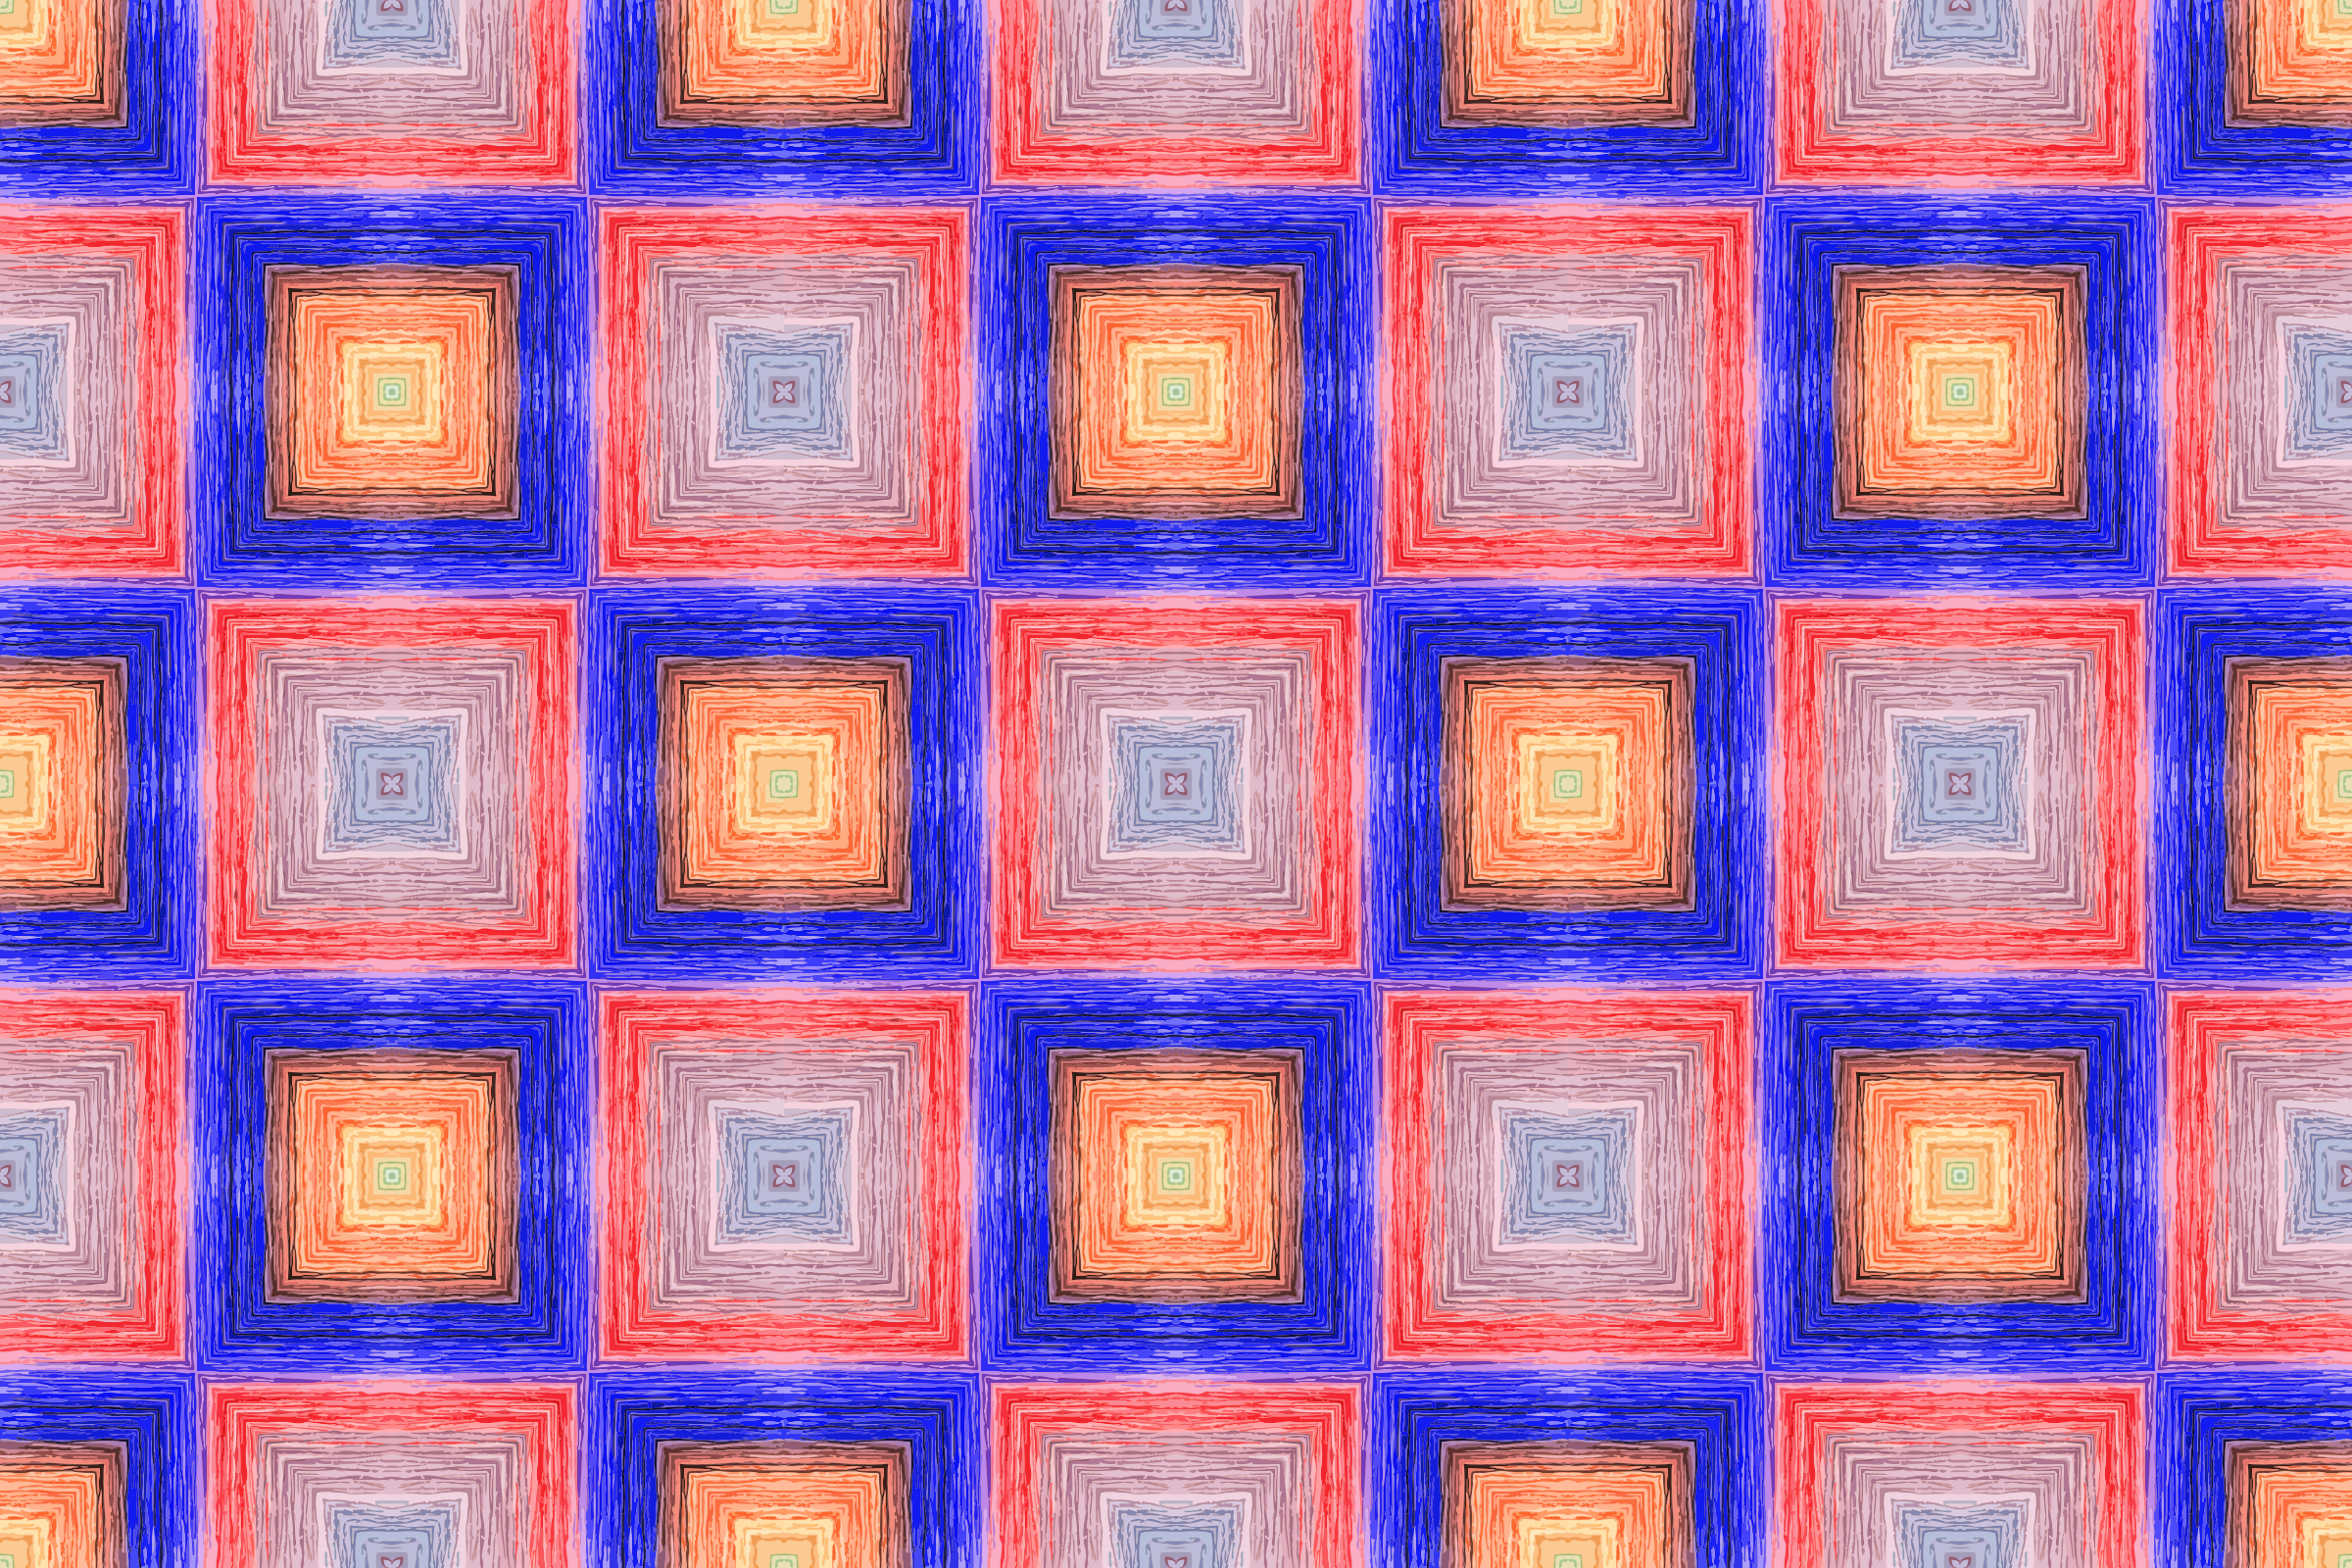 Background pattern 288 (colour 2) by Firkin